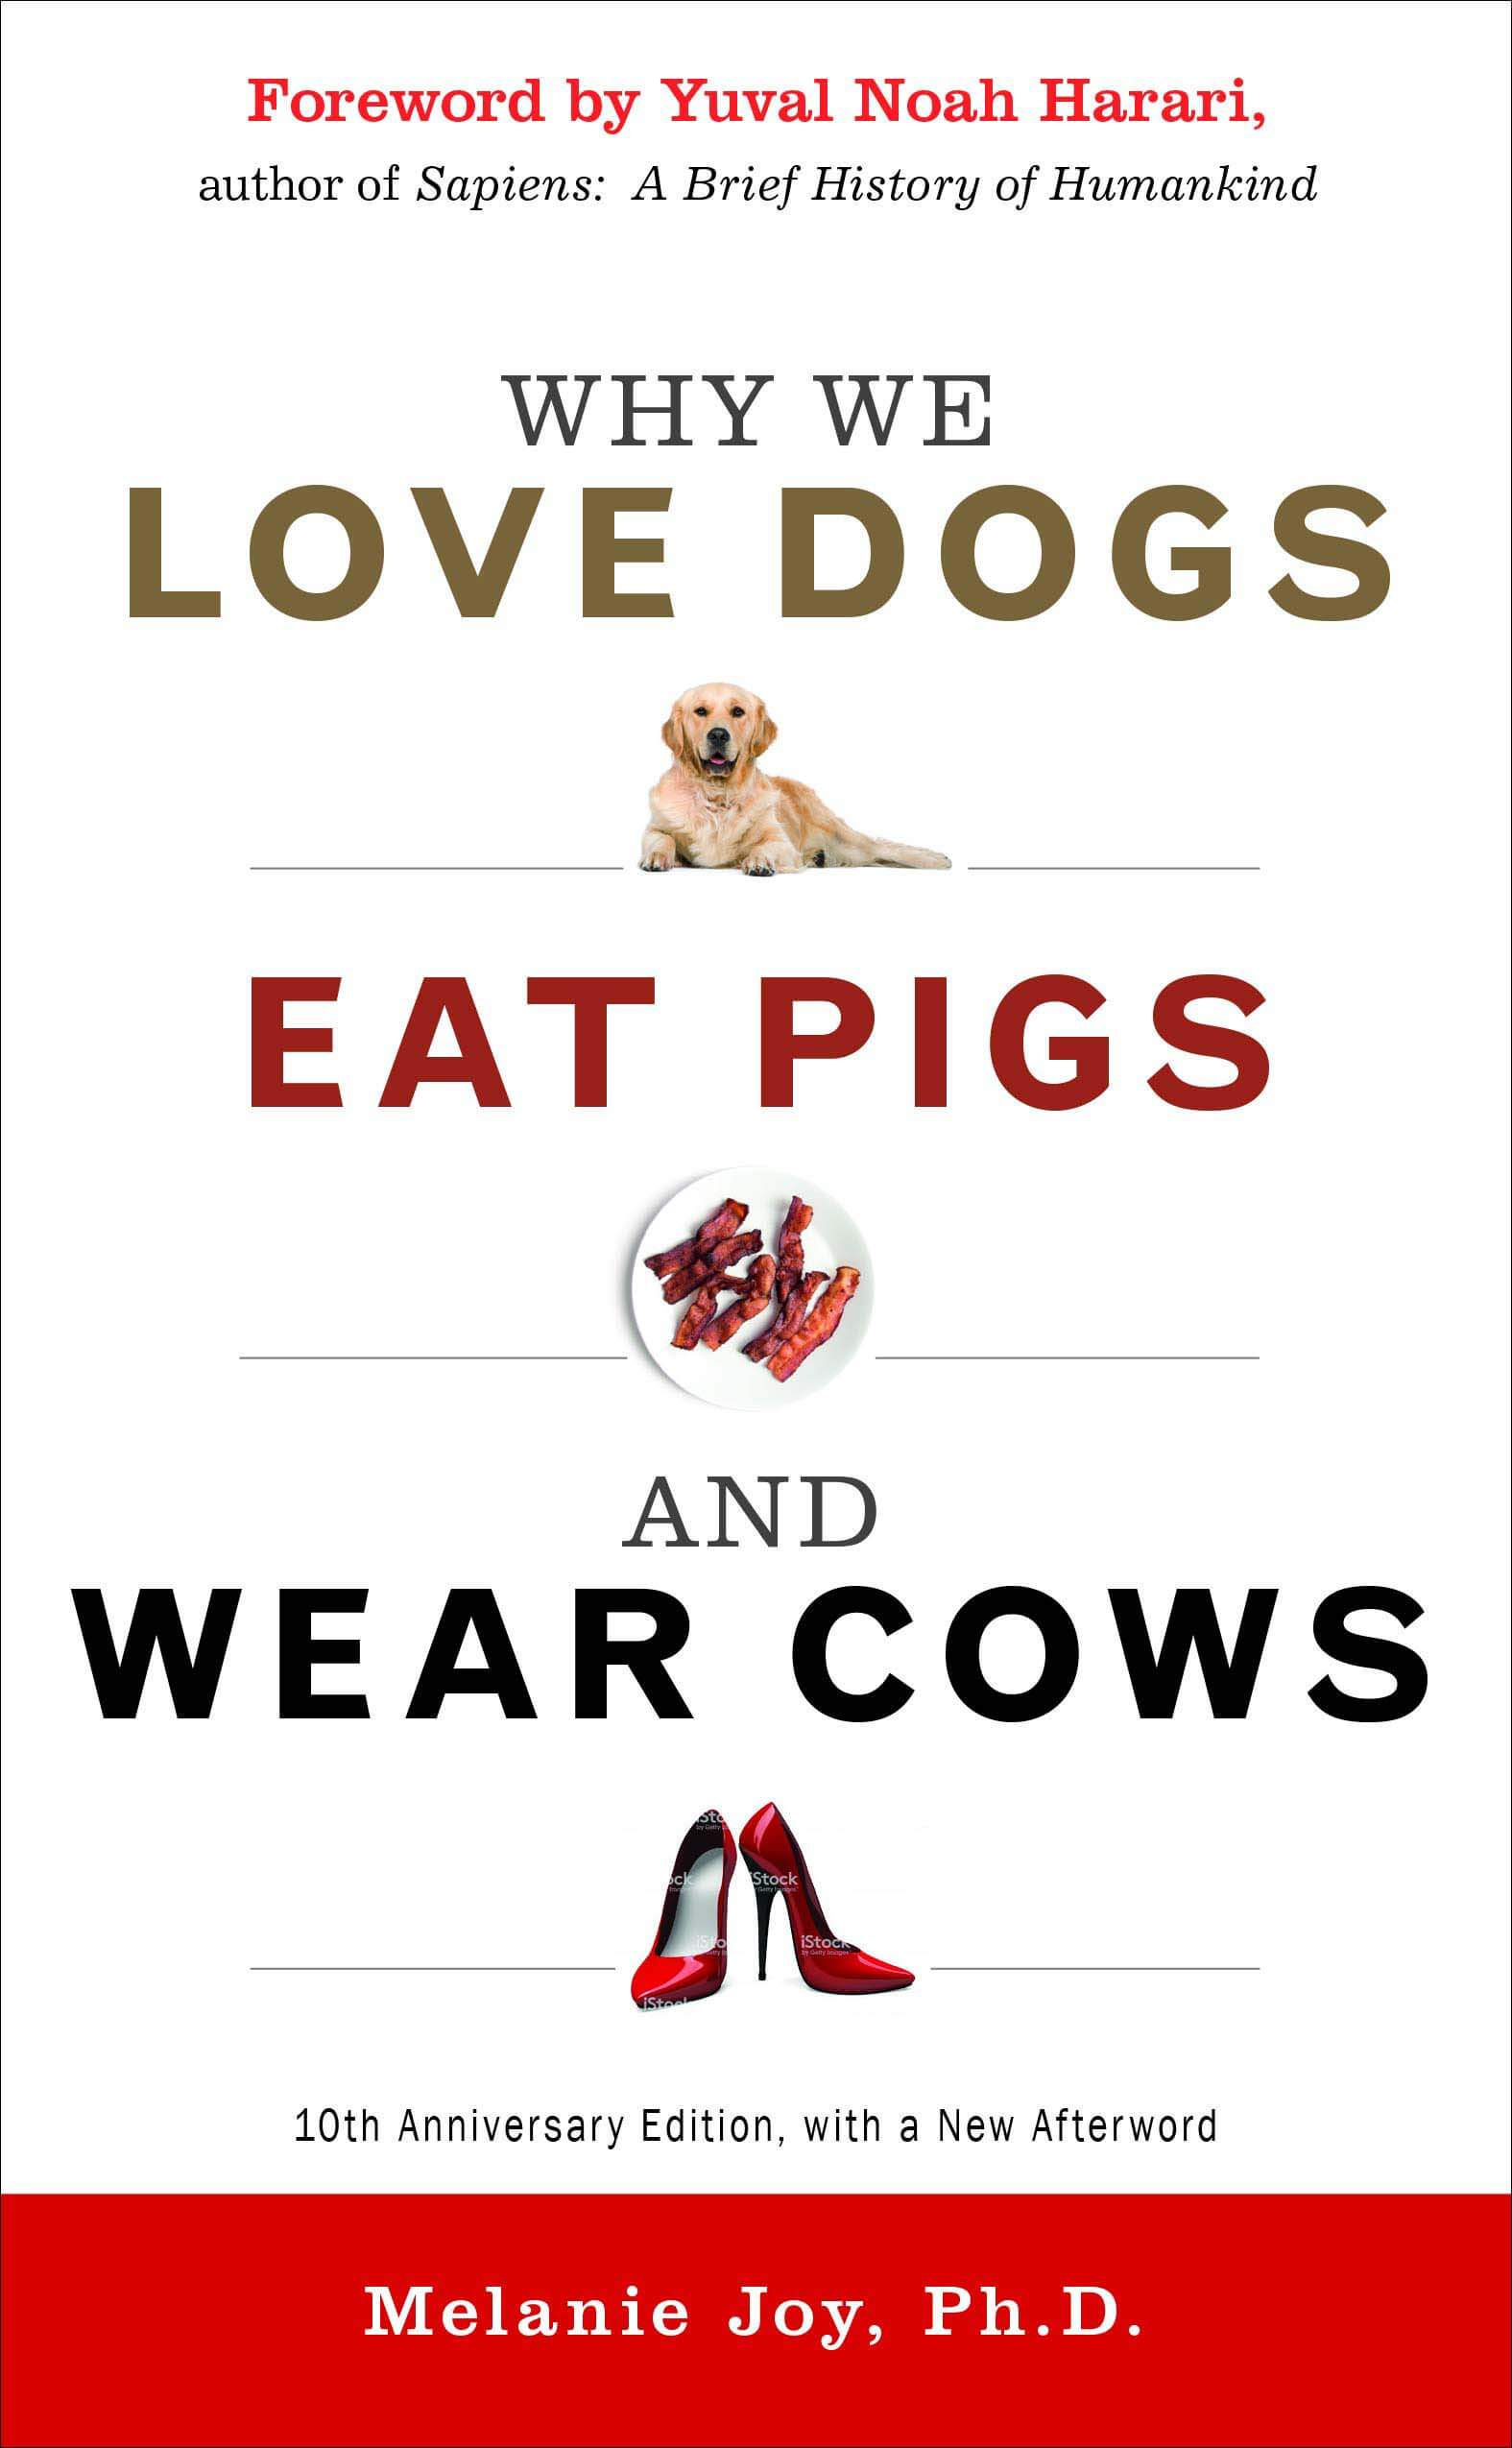 Why We Love Dogs, Eat Pigs, and Wear Cows Dr. Melanie Joy